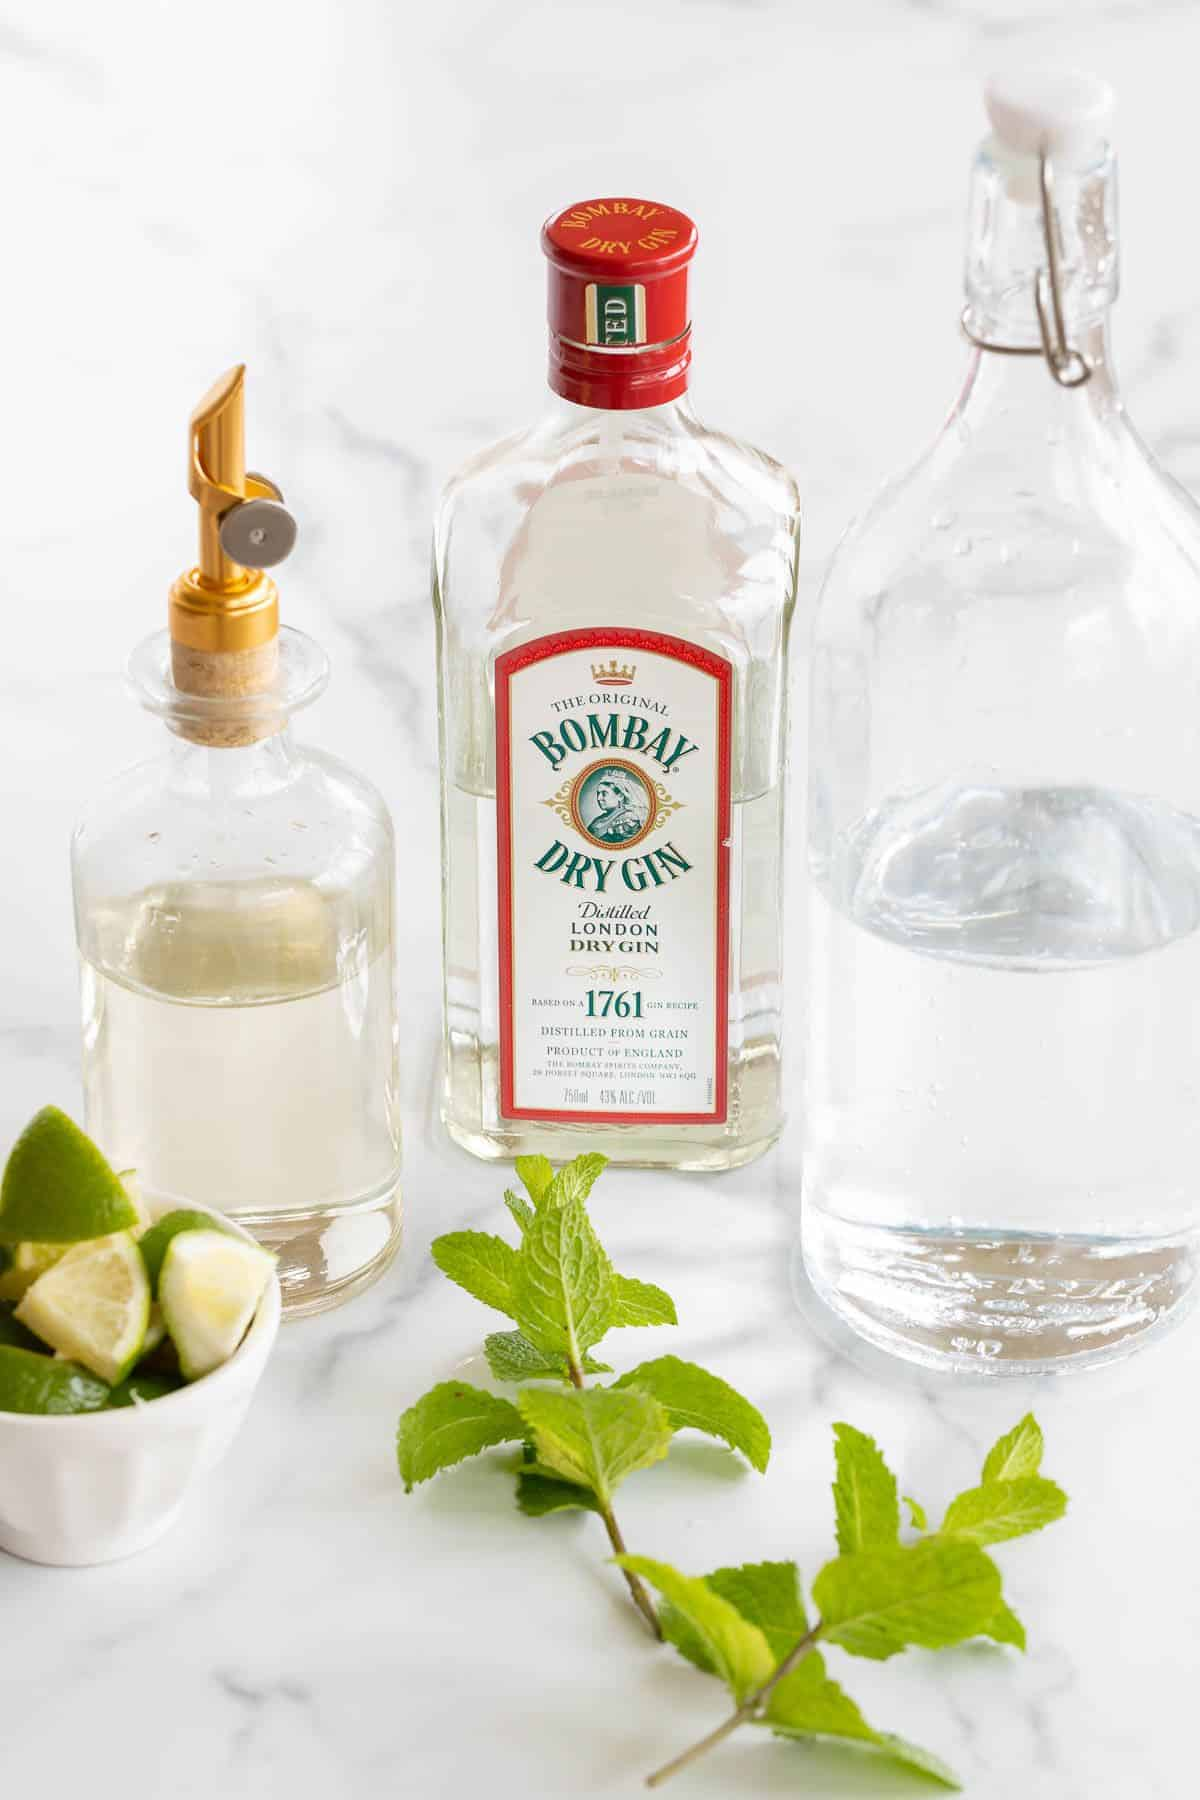 Ingredients for a gin mojito recipe laid out on a marble surface.